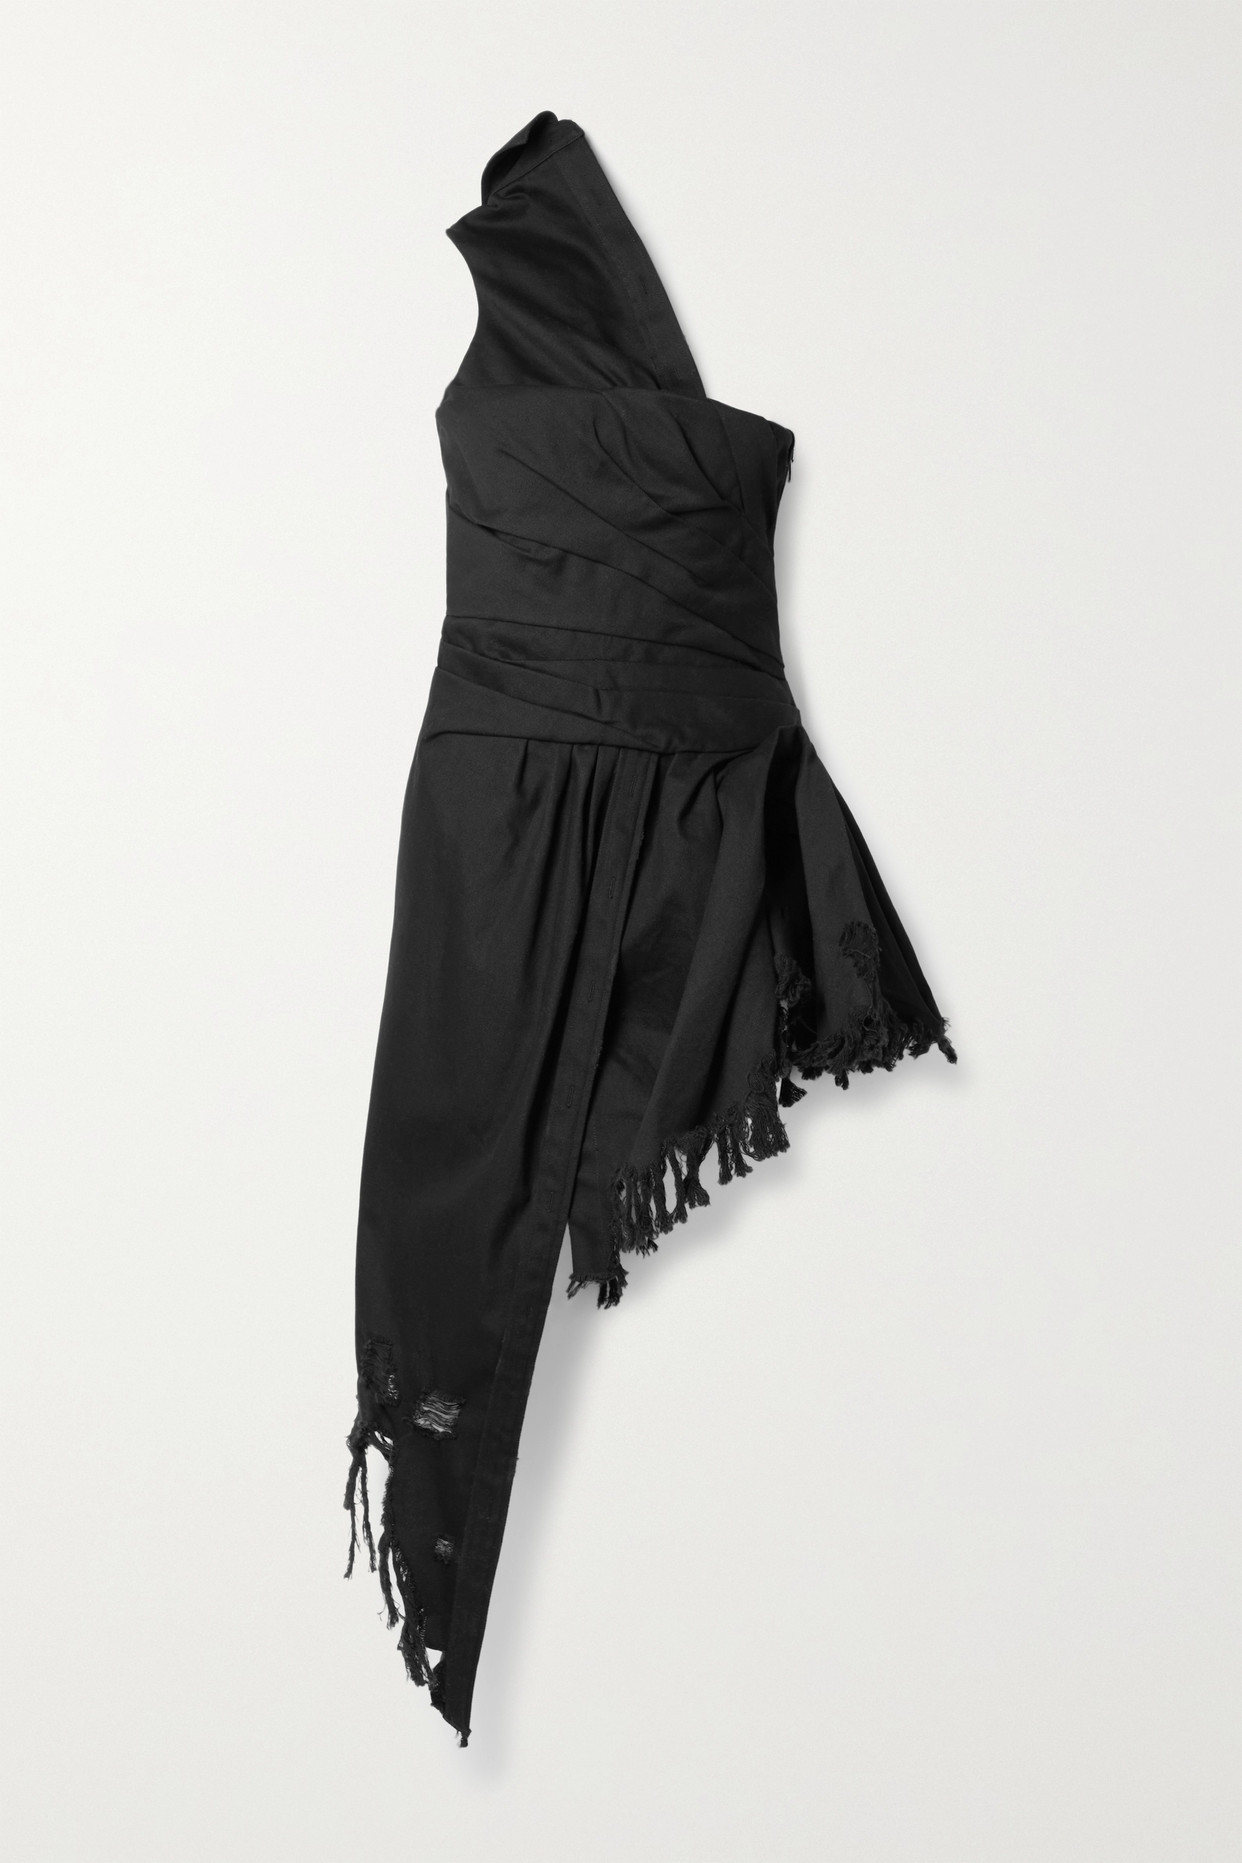 ALEXANDER WANG - Asymmetric One-shoulder Distressed Denim Dress - Black - US6